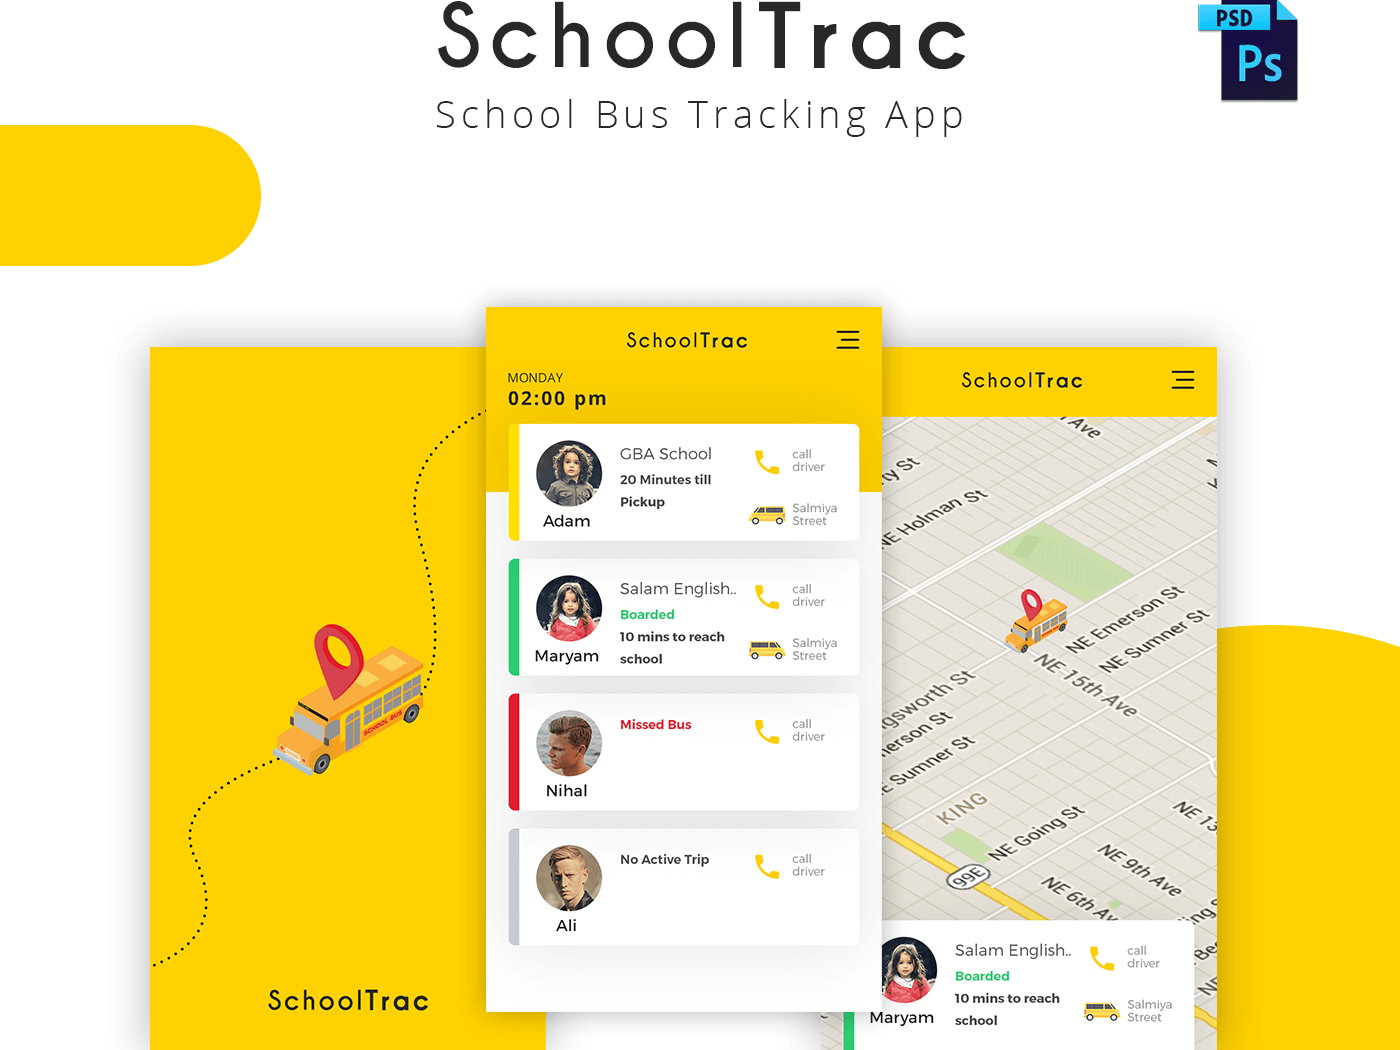 SchoolTrac - School Bus Tracking App cover image